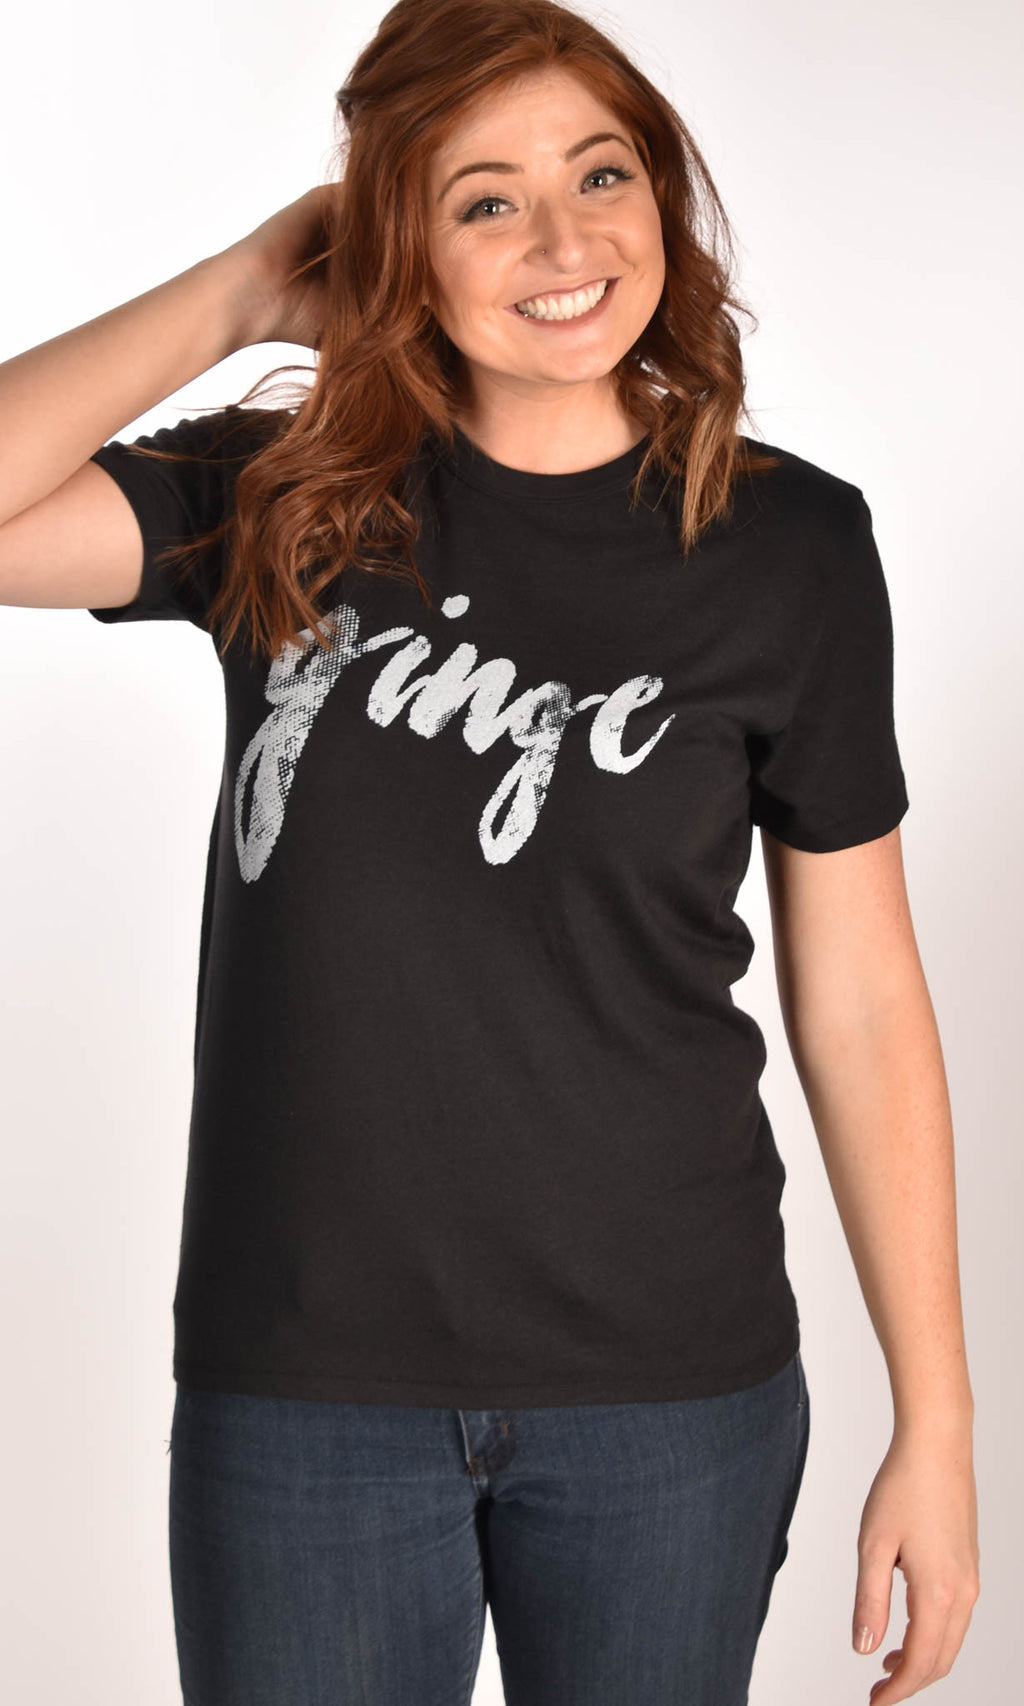 GINGE Vintage Black Tee Ginger Problems - Red Hair Don't Care